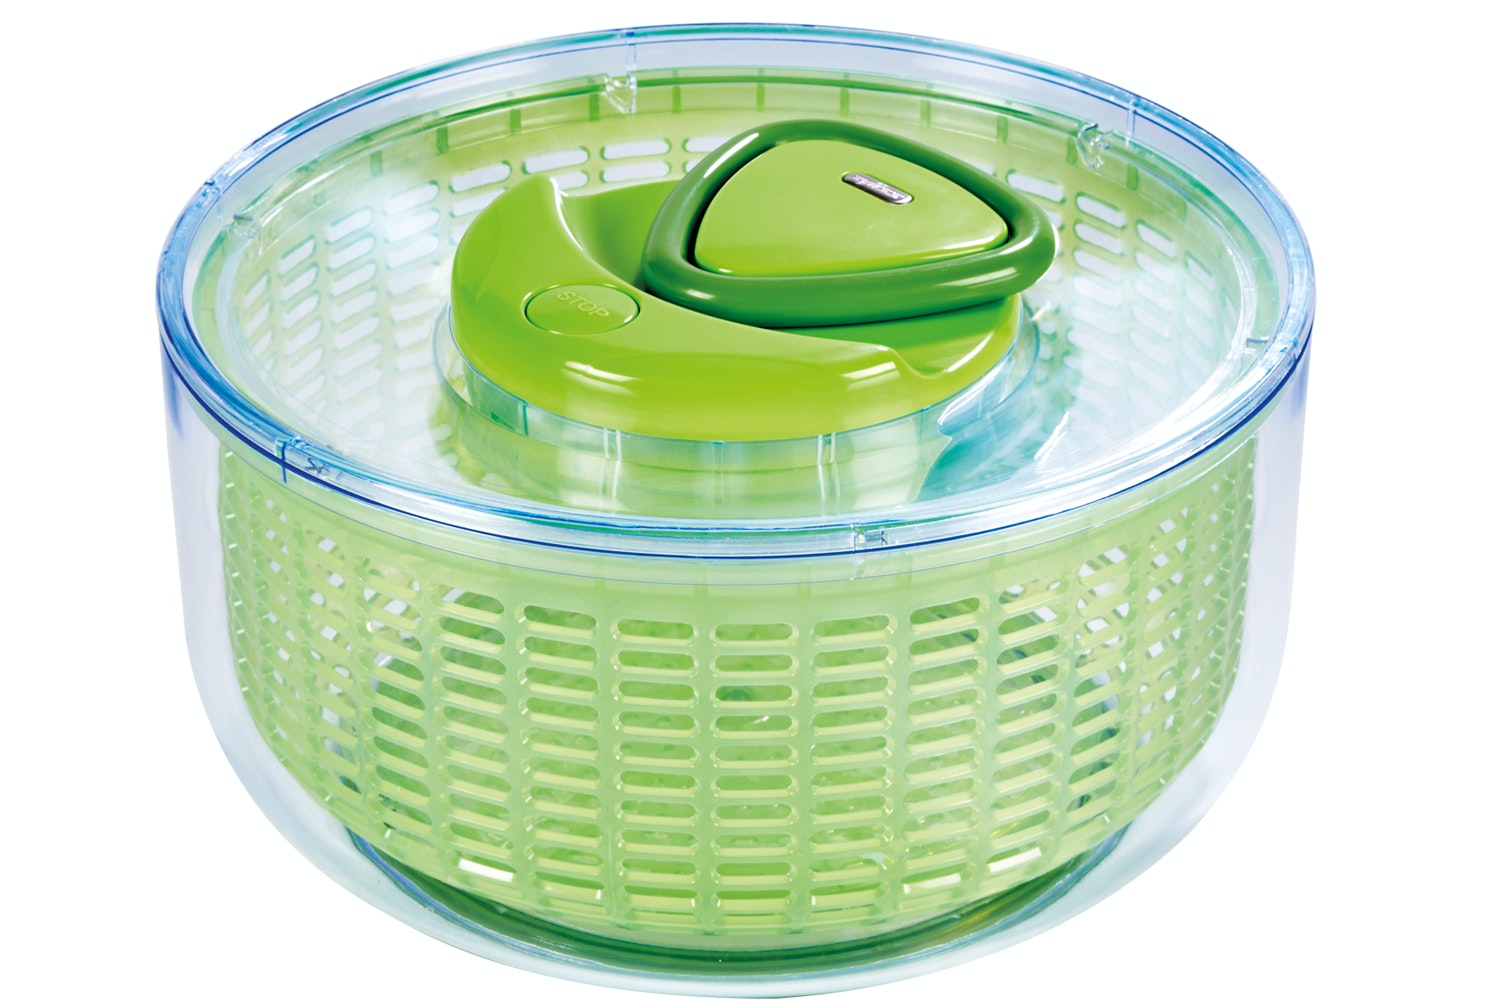 Easy Spin Salad Spinner